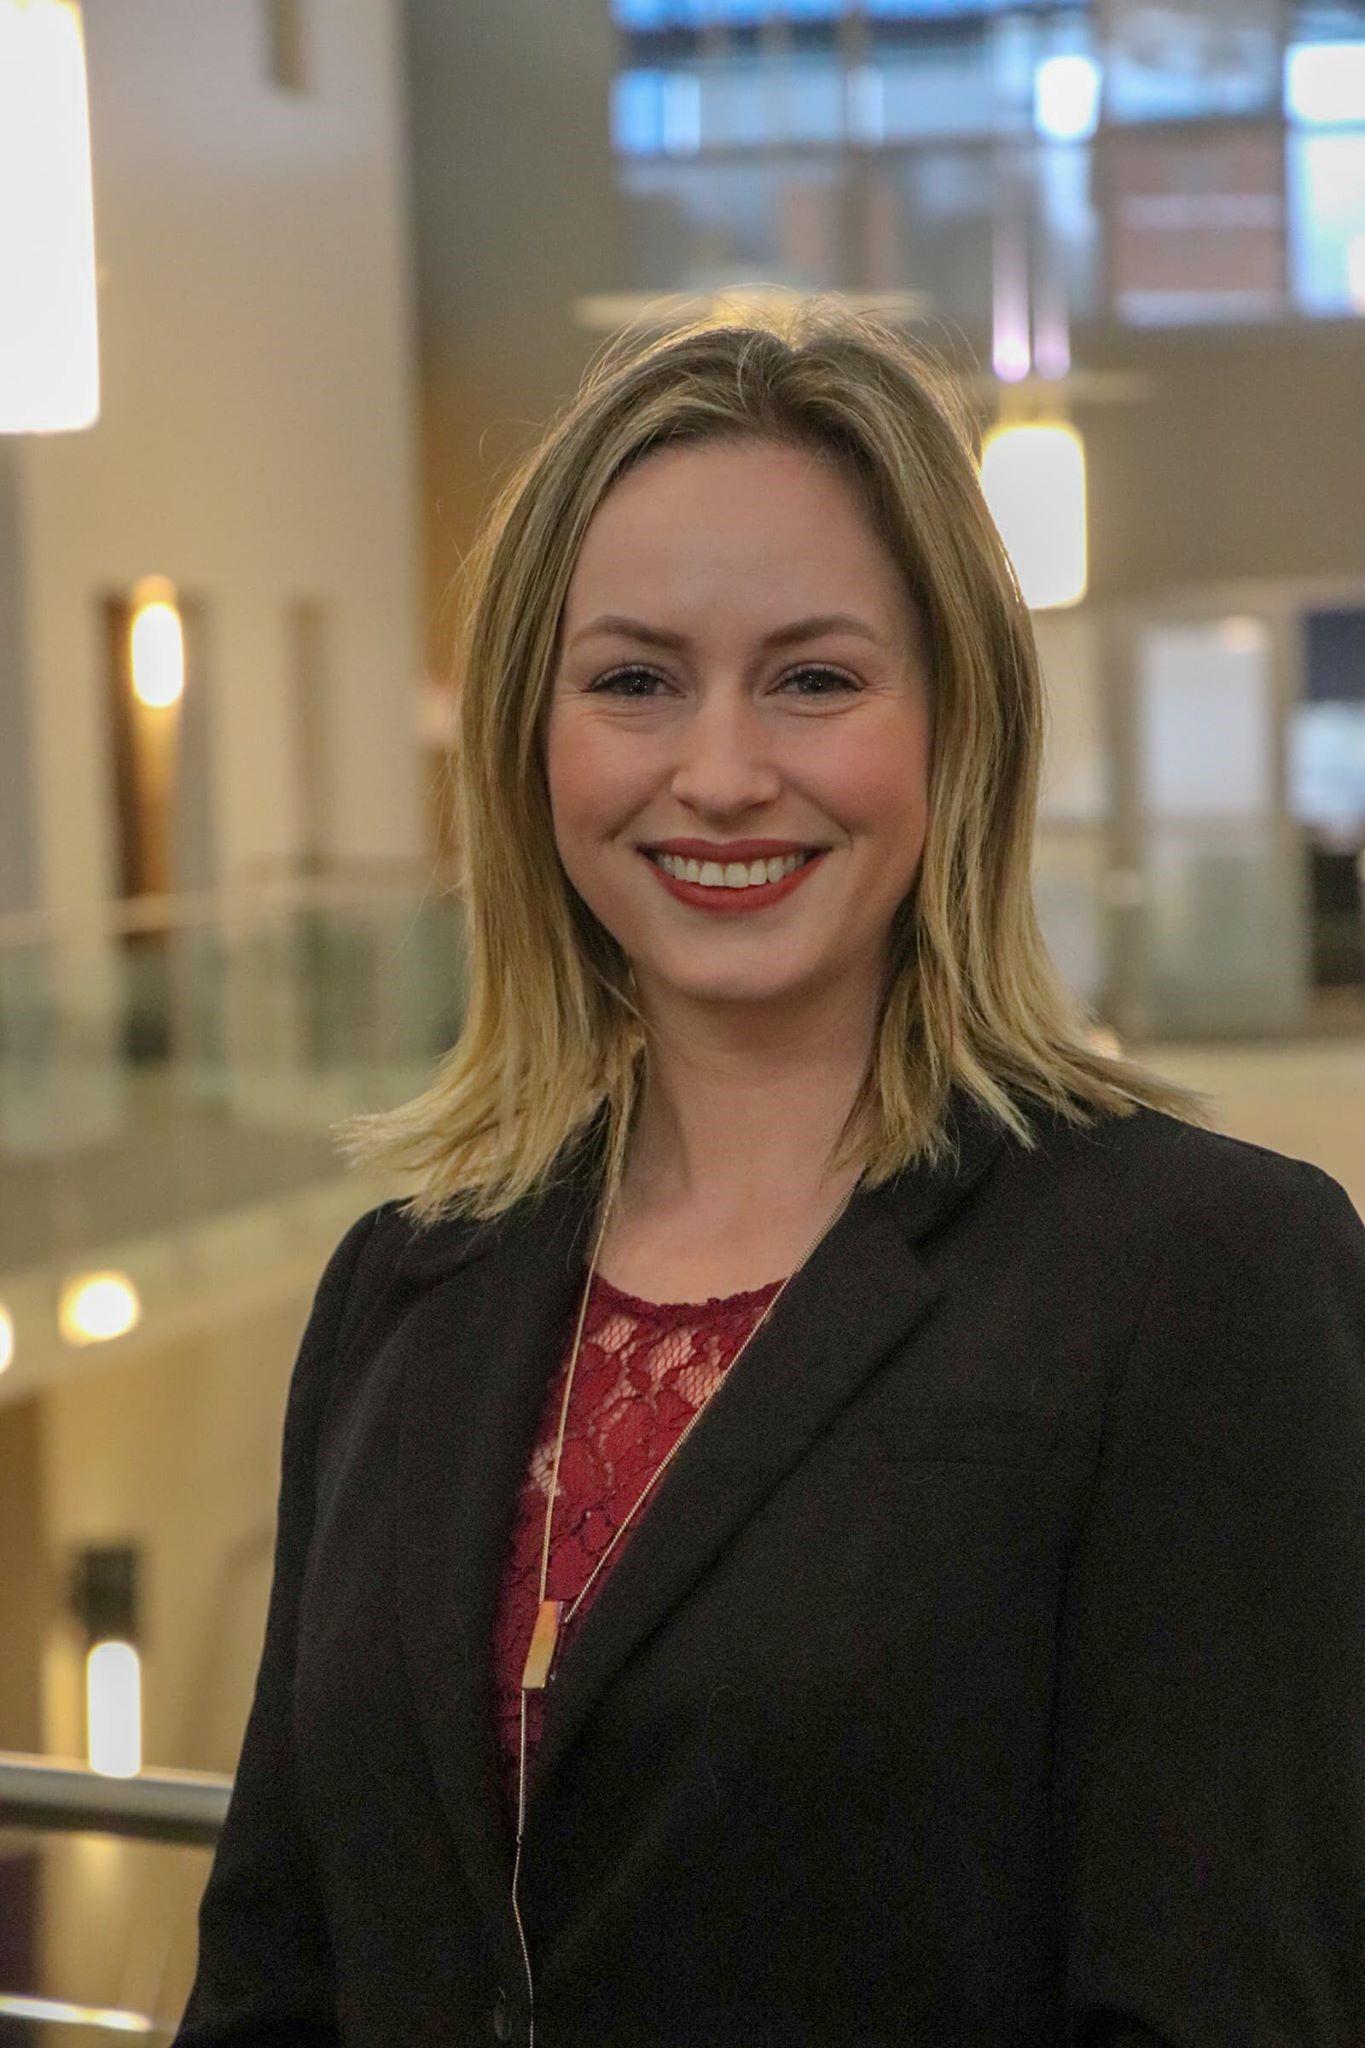 Image of doctor Meghan McConnell